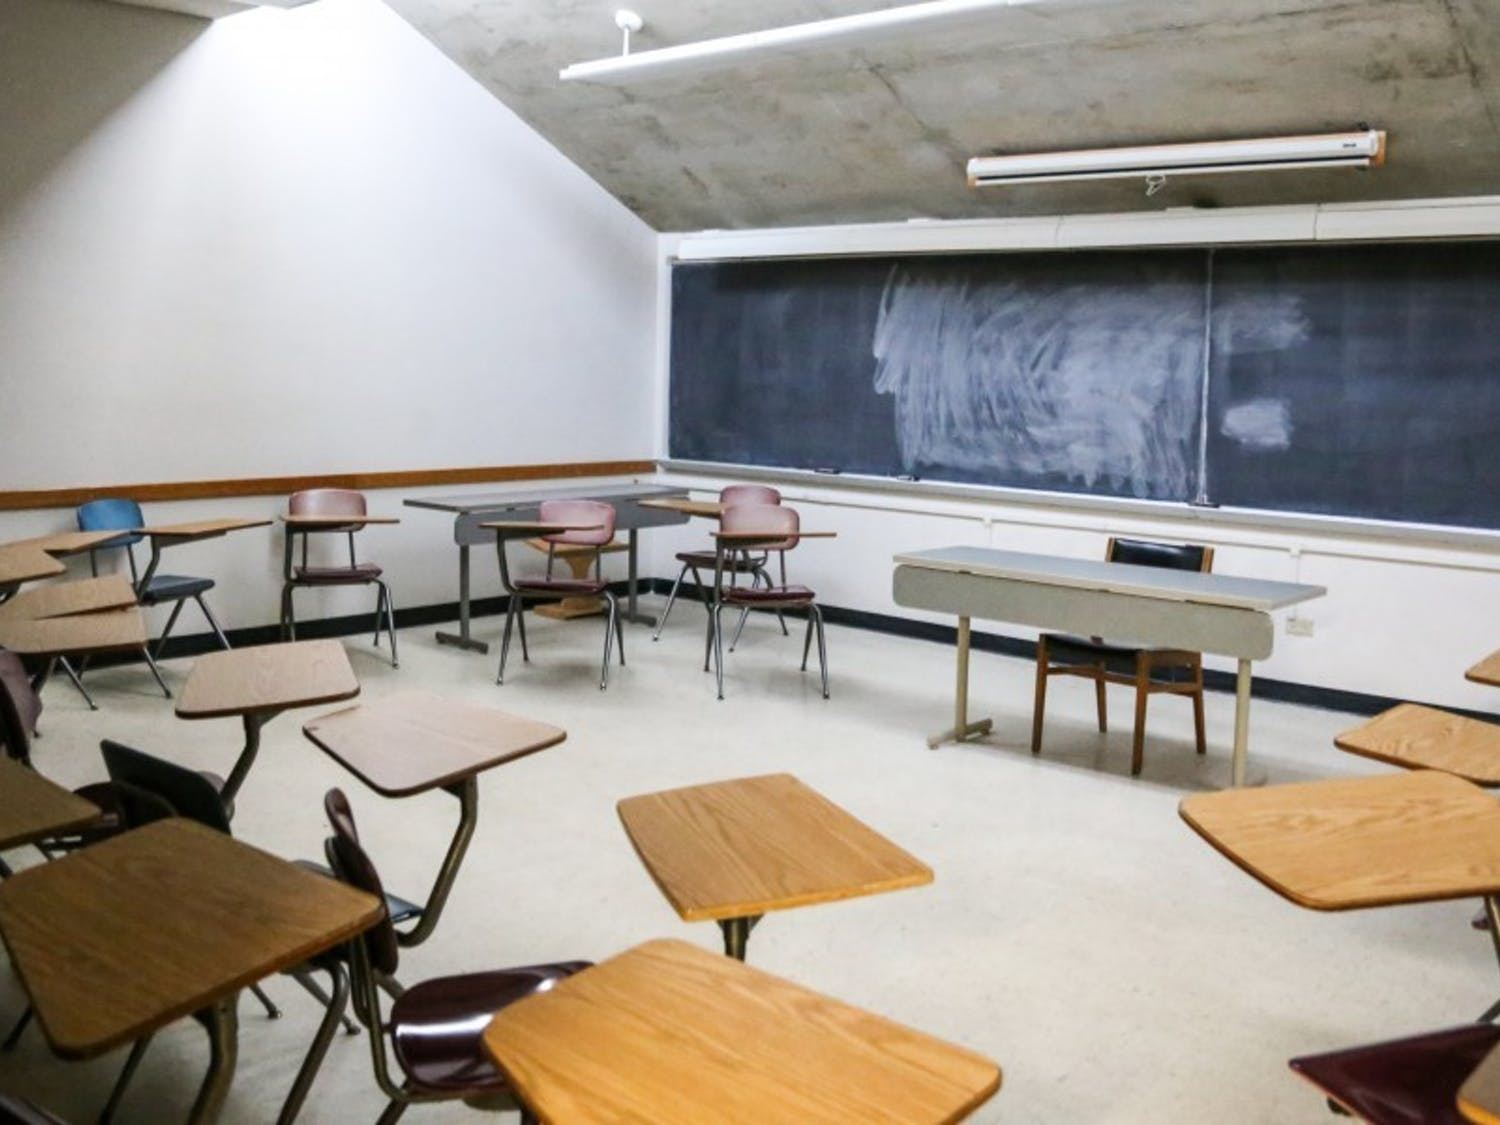 Photo of a classroom.